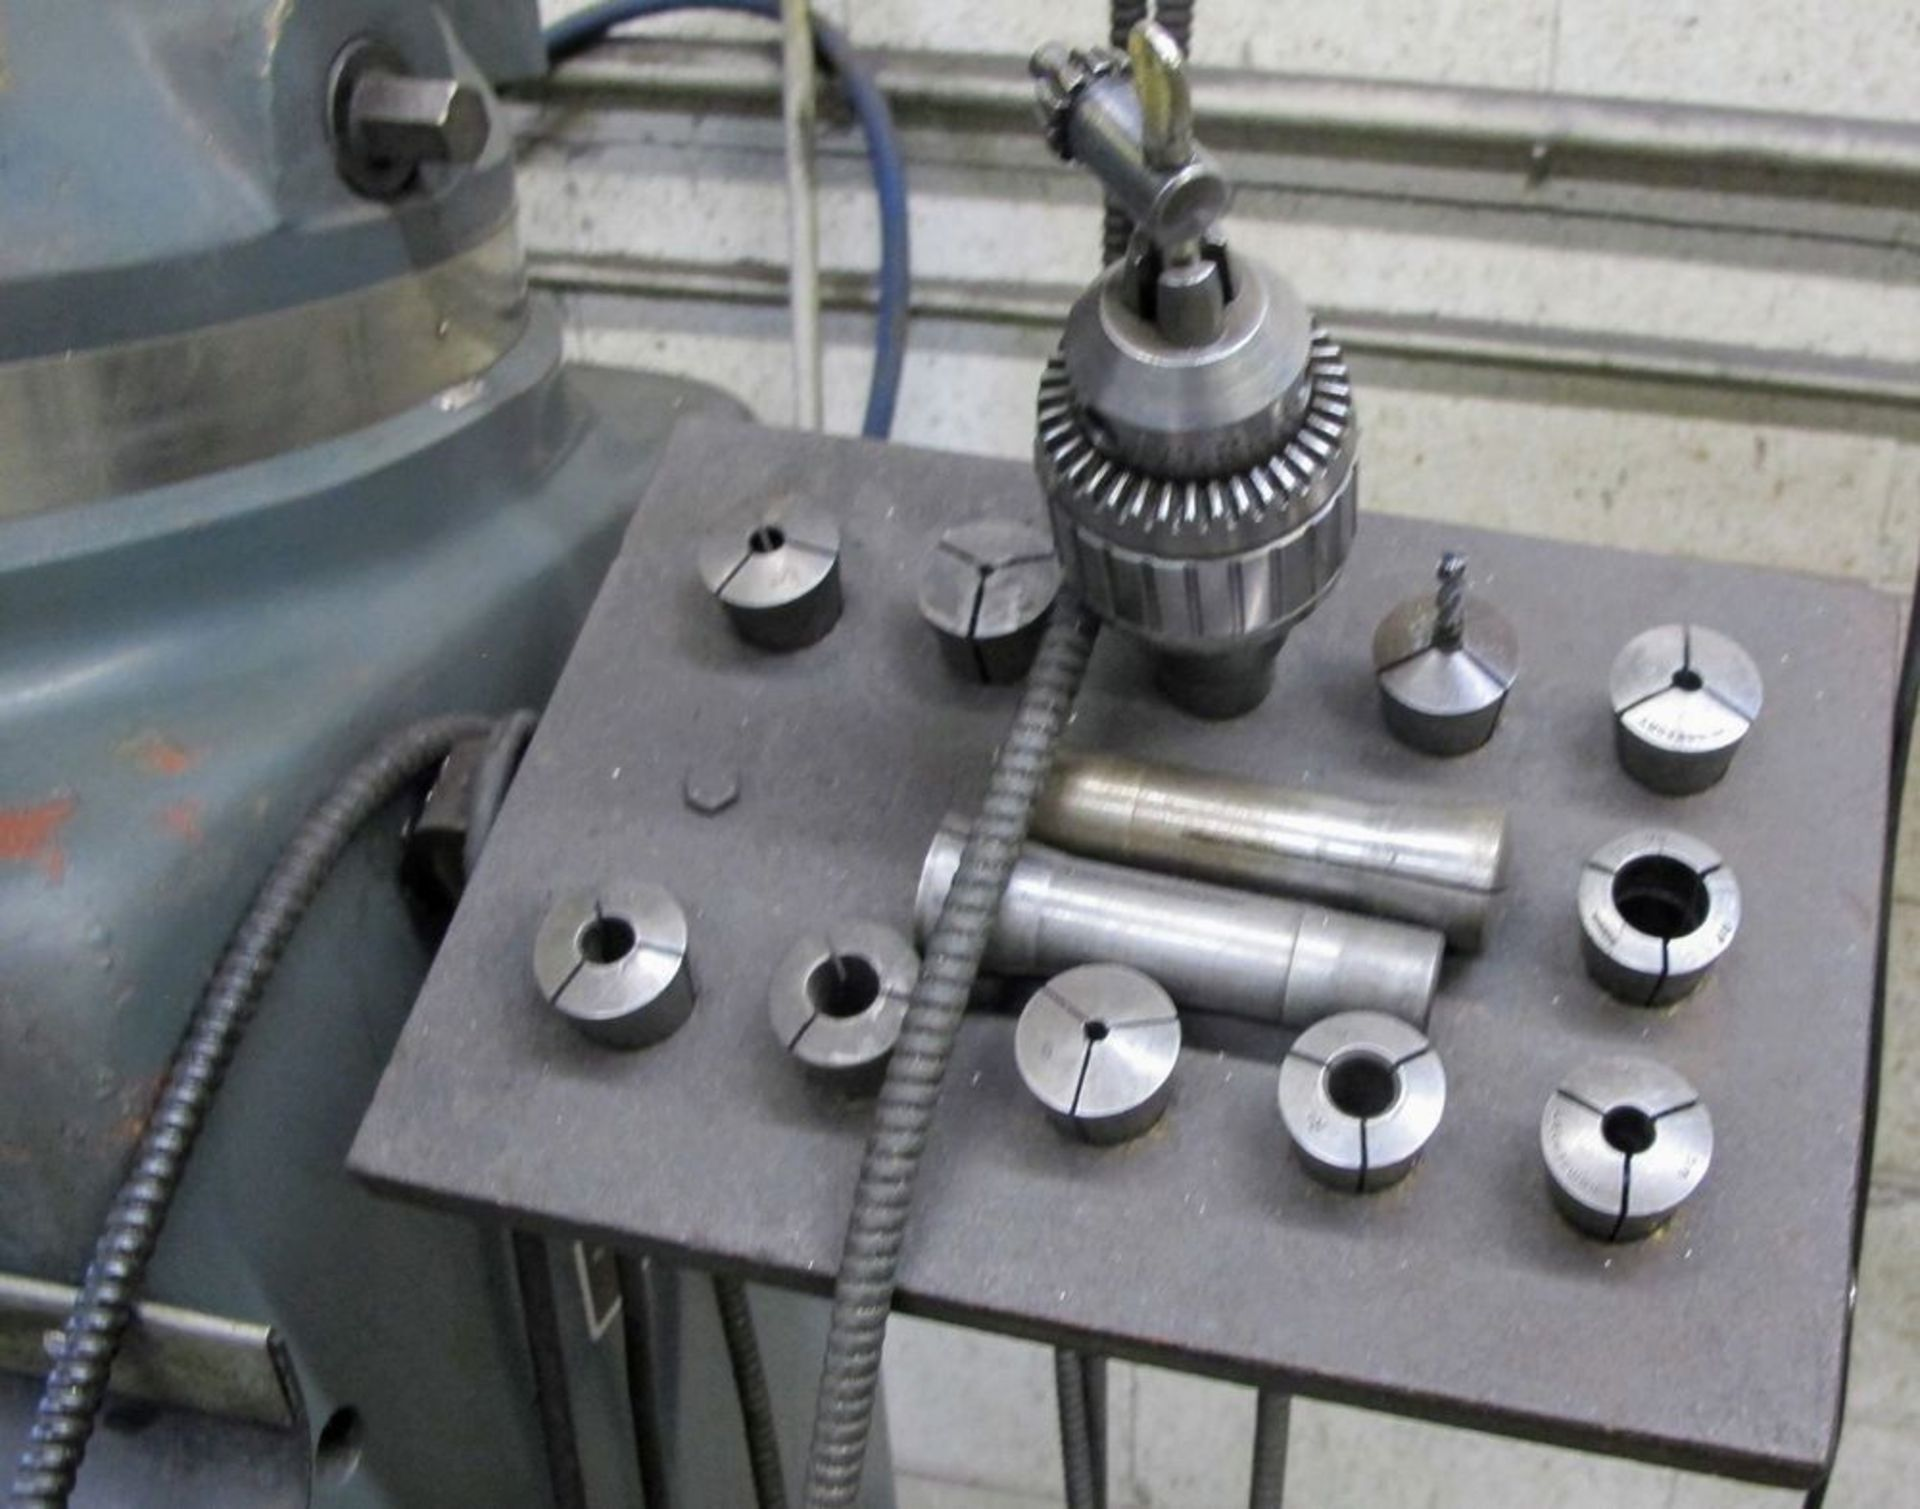 MAXIMART 3 HP VERTICAL MILLING MACHINE, MODEL S-3VS, S/N 95772, FAGOR 2 AXIS DRO, COLLET SET W/ - Image 3 of 7